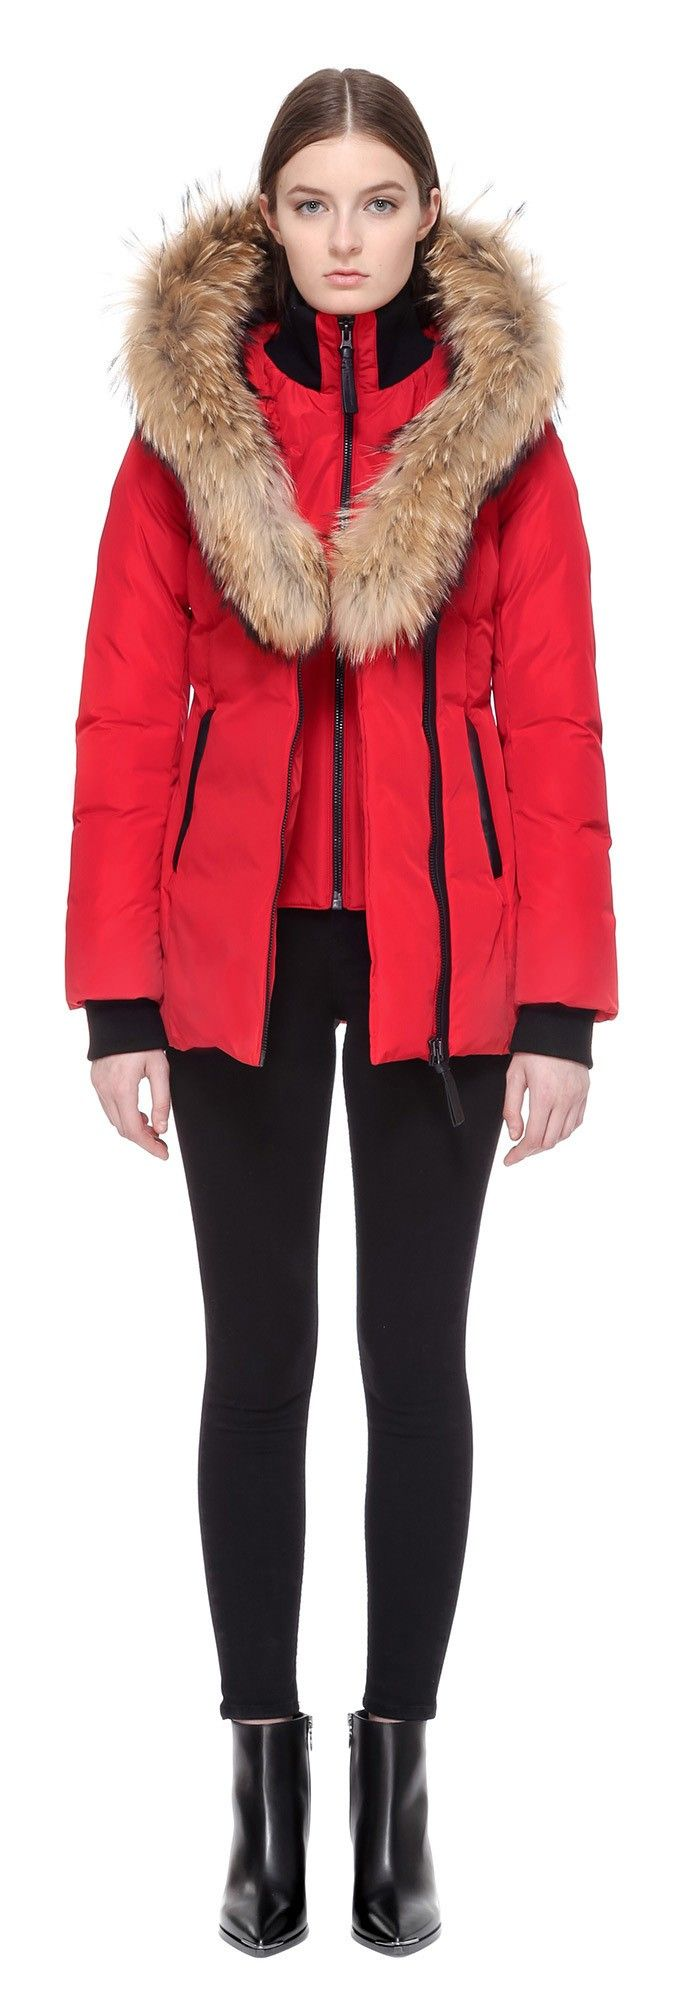 ADALI FITTED WINTER DOWN COAT WITH FUR HOOD IN RED